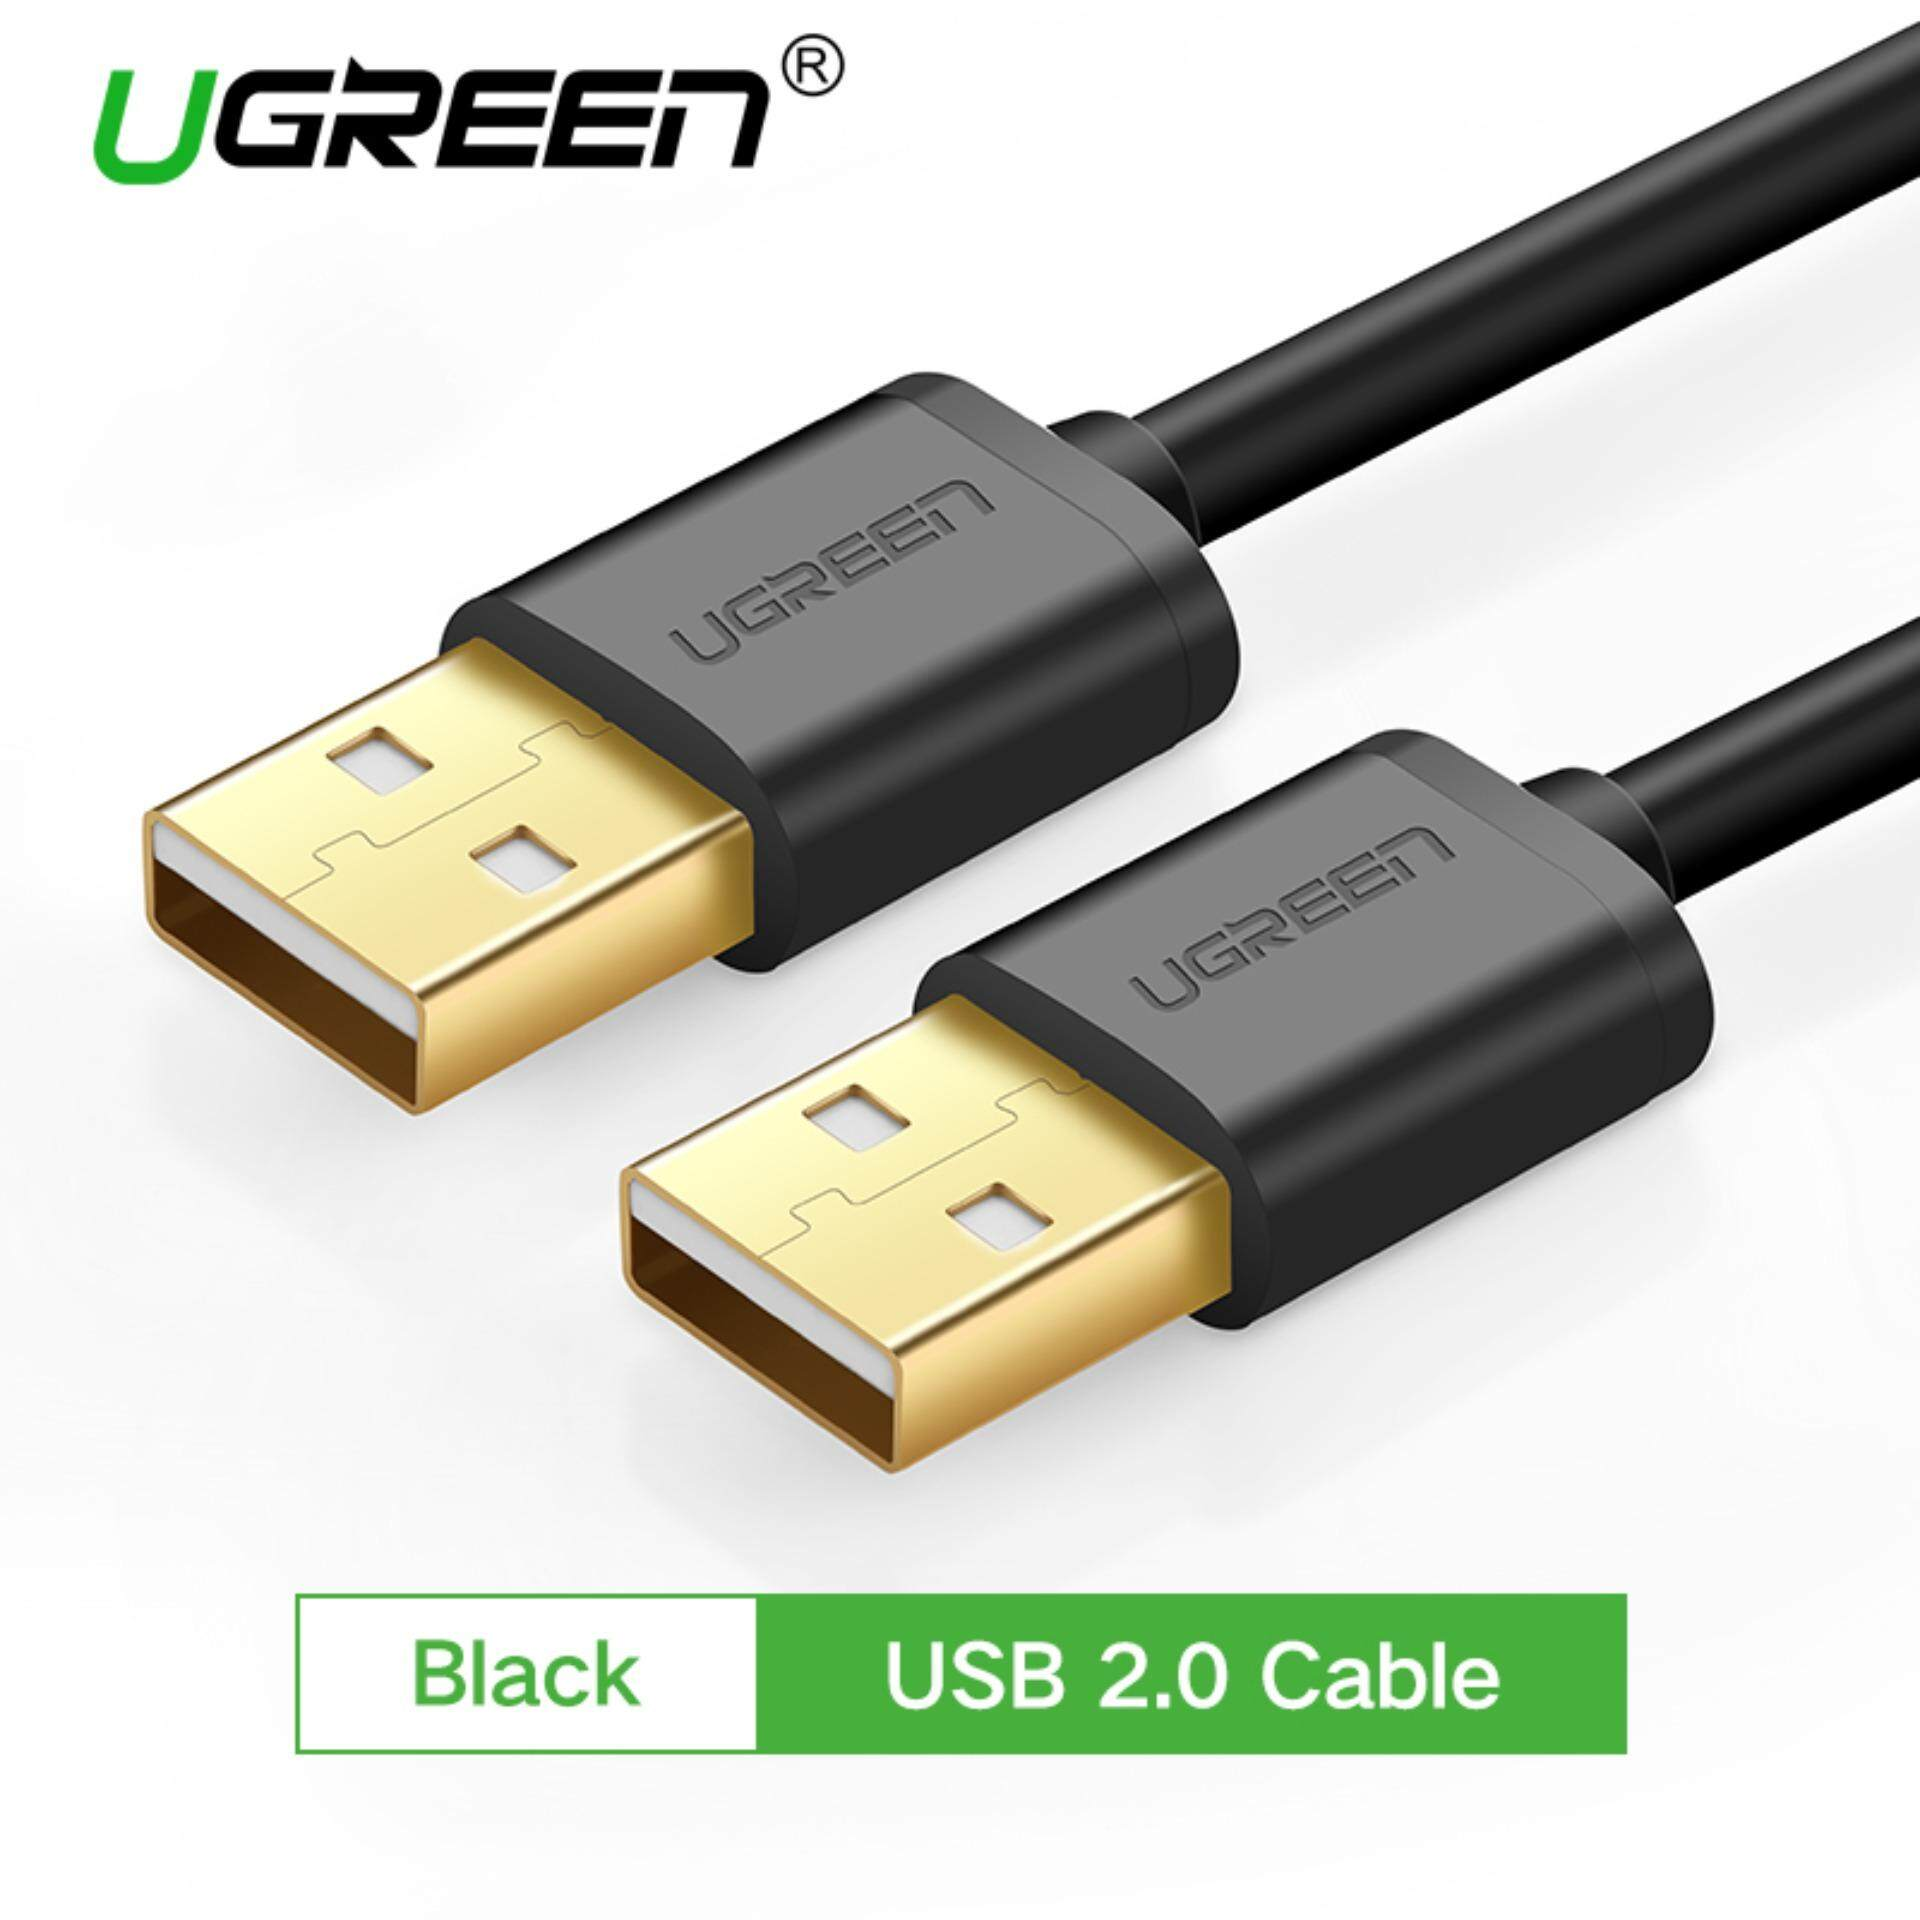 Computer Laptop Serial Cables For The Best Prices In Malaysia Usb To Rj11 Wiring Diagram Rs232 Female Ugreen 3m Gold Plated 20 Male Extender Cable Black